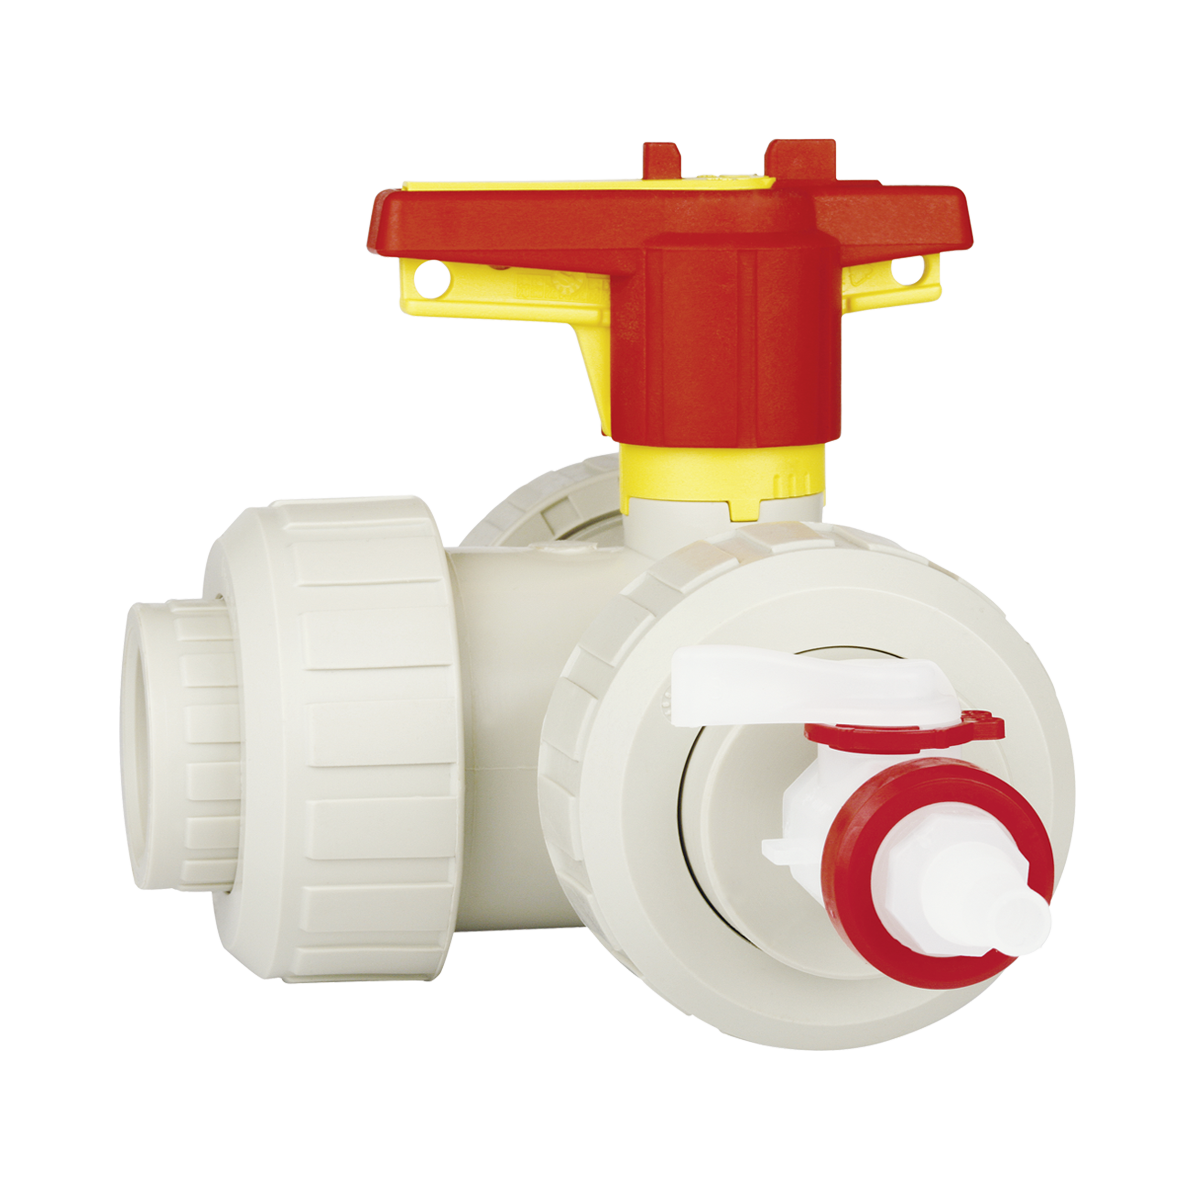 Praher 3-way ball valve PP limited, beige, red, yellow